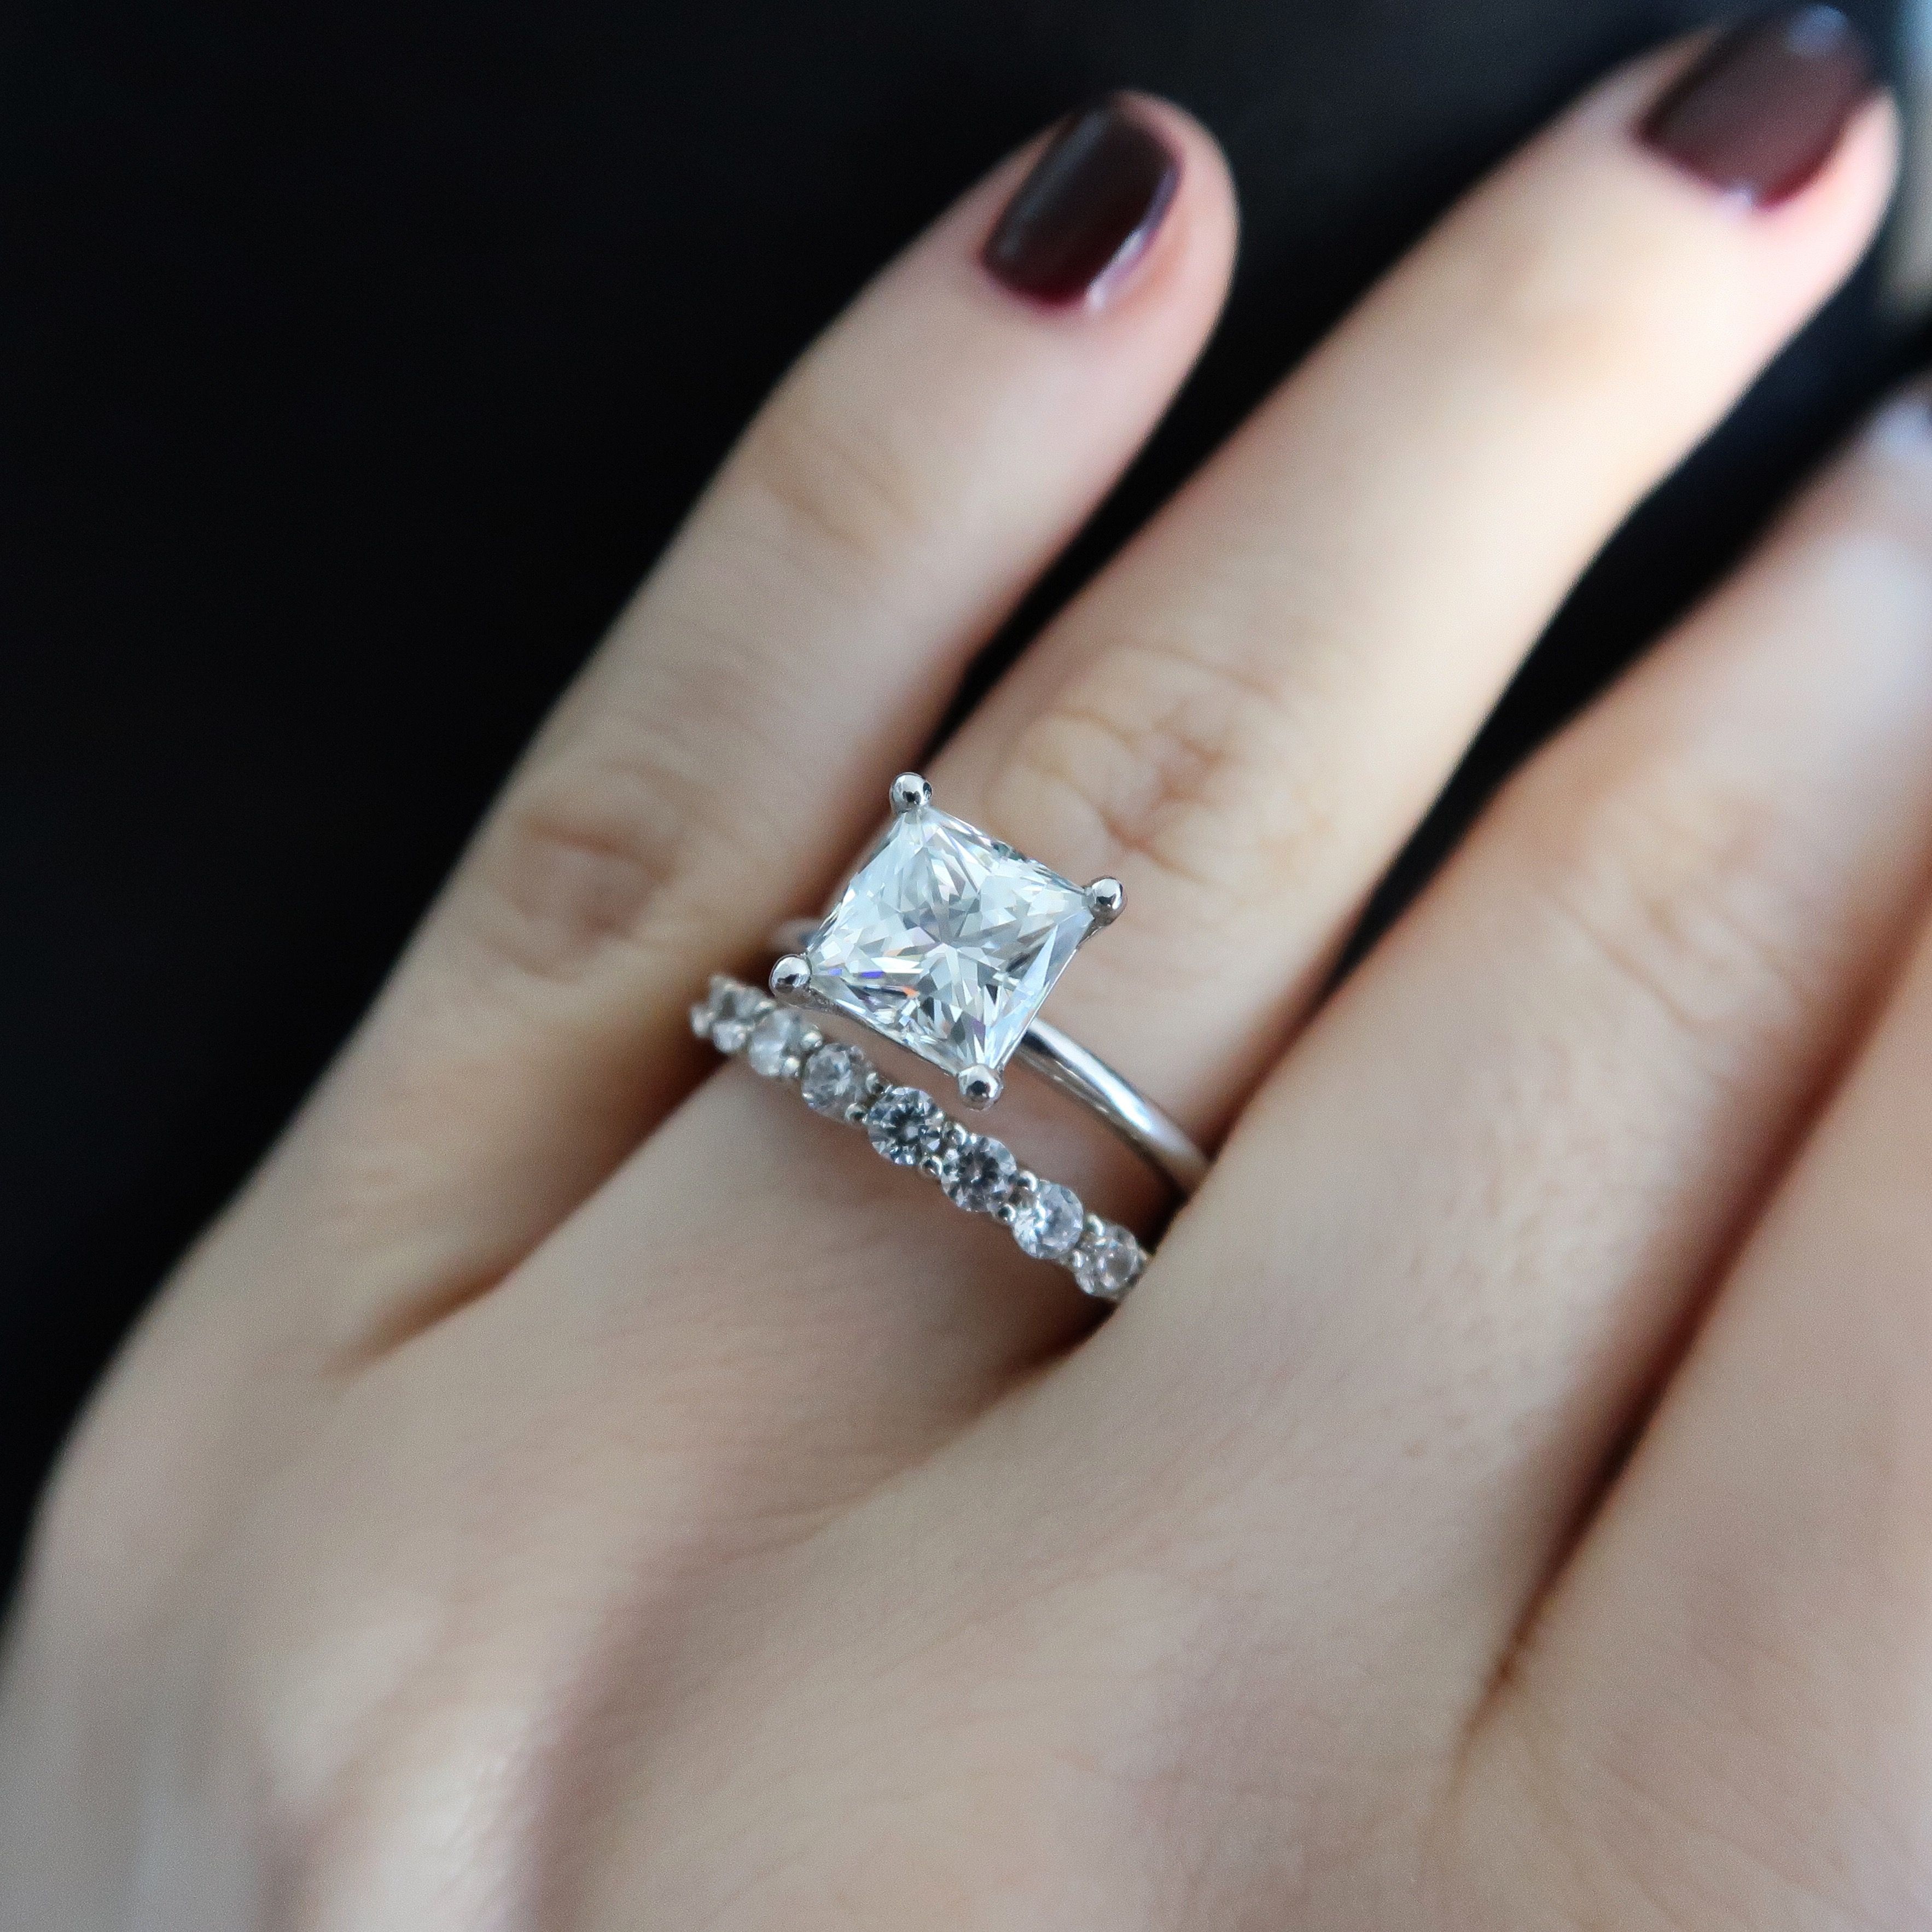 8460cbafc Princess cut Moissanite bridal set. White gold. Solitaire. 2 ct. NEO  moissanite. Square cut.